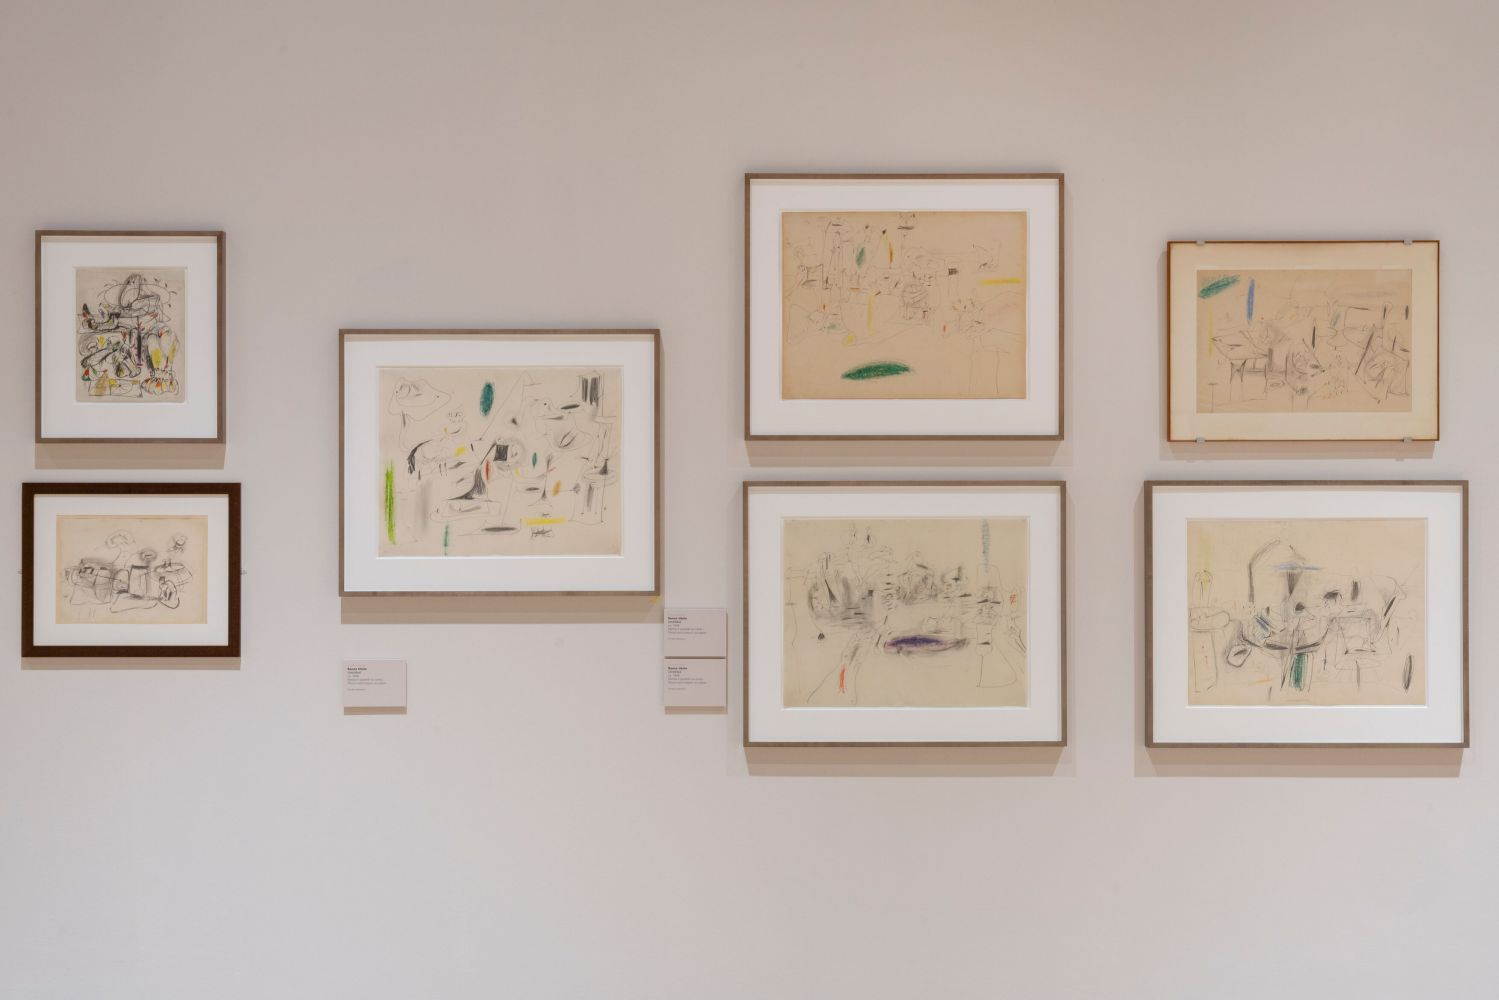 Installation photograph showing a seven abstract drawings by Gorky from the 1940s